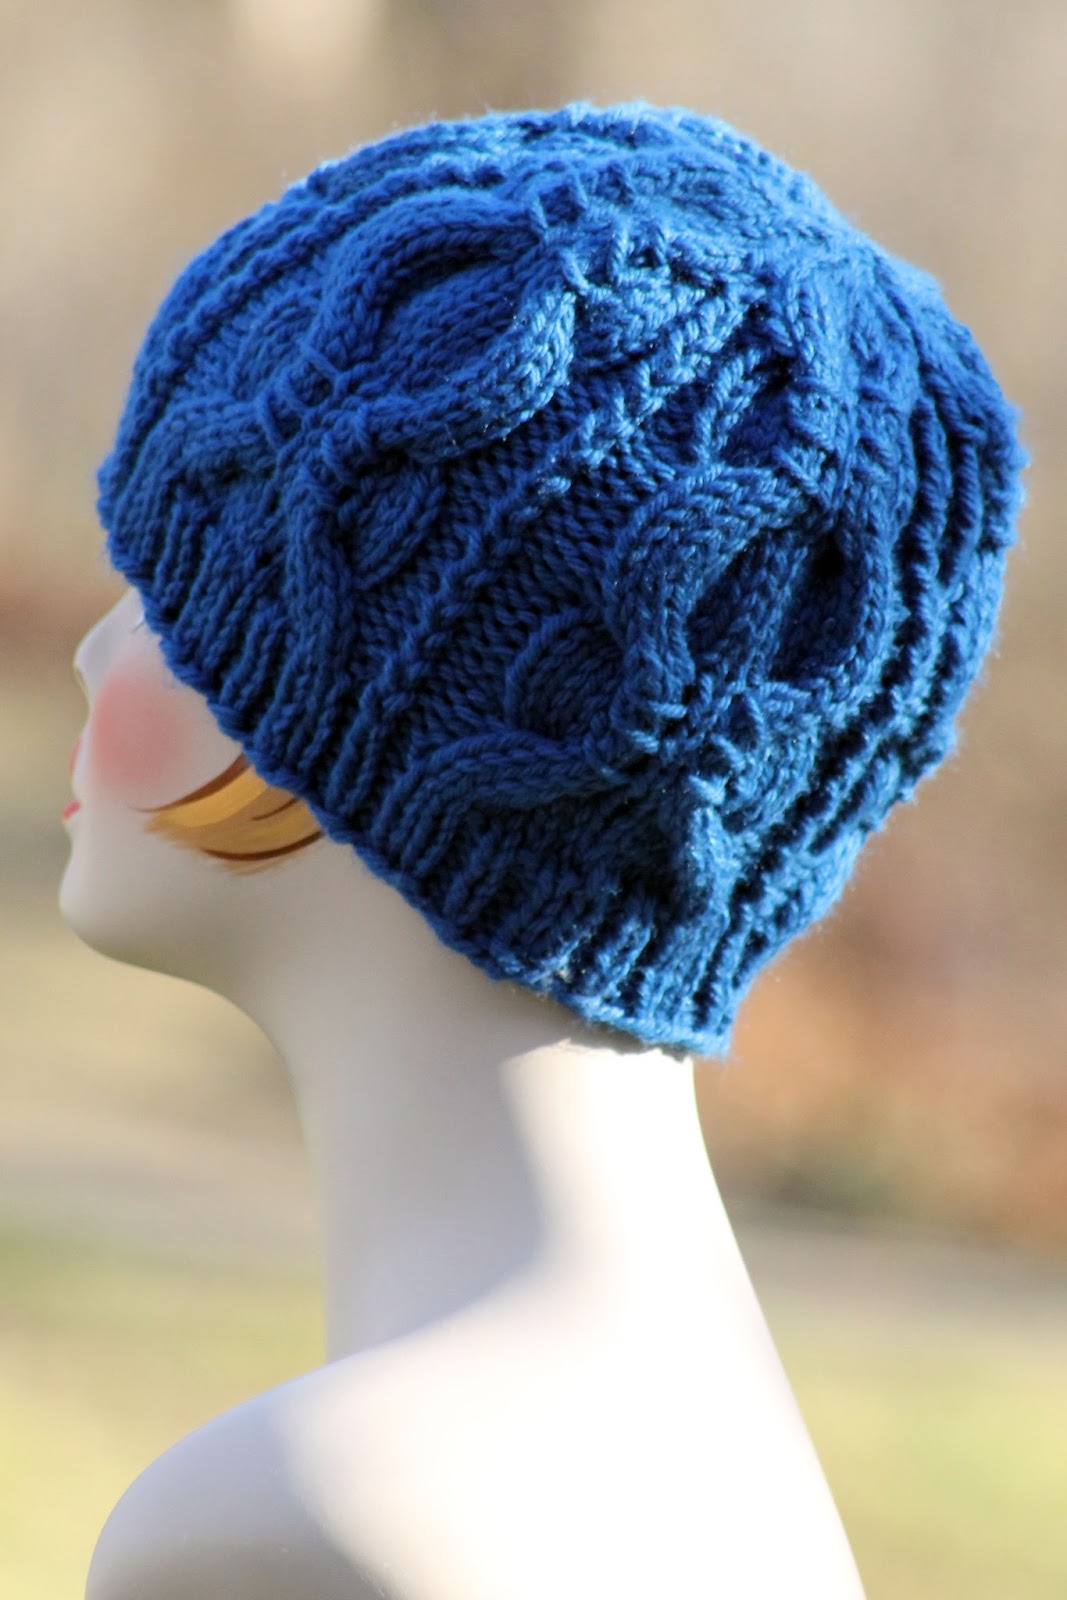 Balls to the Walls Knits: Banded Cable Beanie